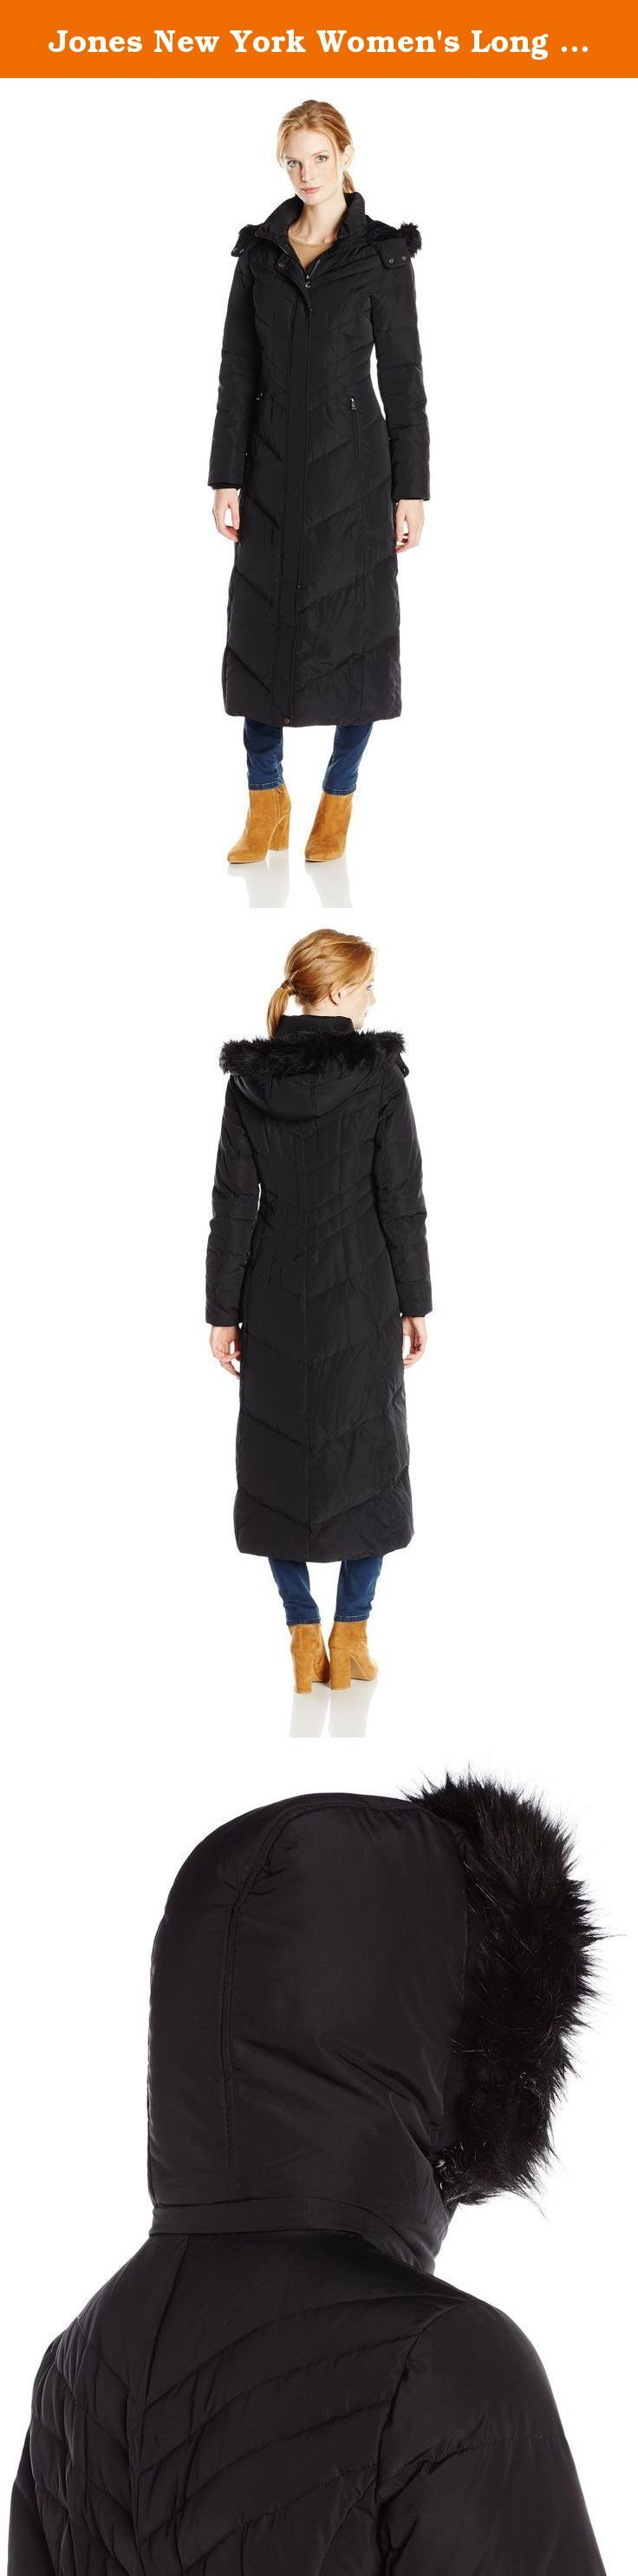 Jones New York Women's Long Maxi Down Coat, Black, Medium. This plus size long maxi down coat by jones New York is perfect for those cold winter days. Long enough to withstand the elements.